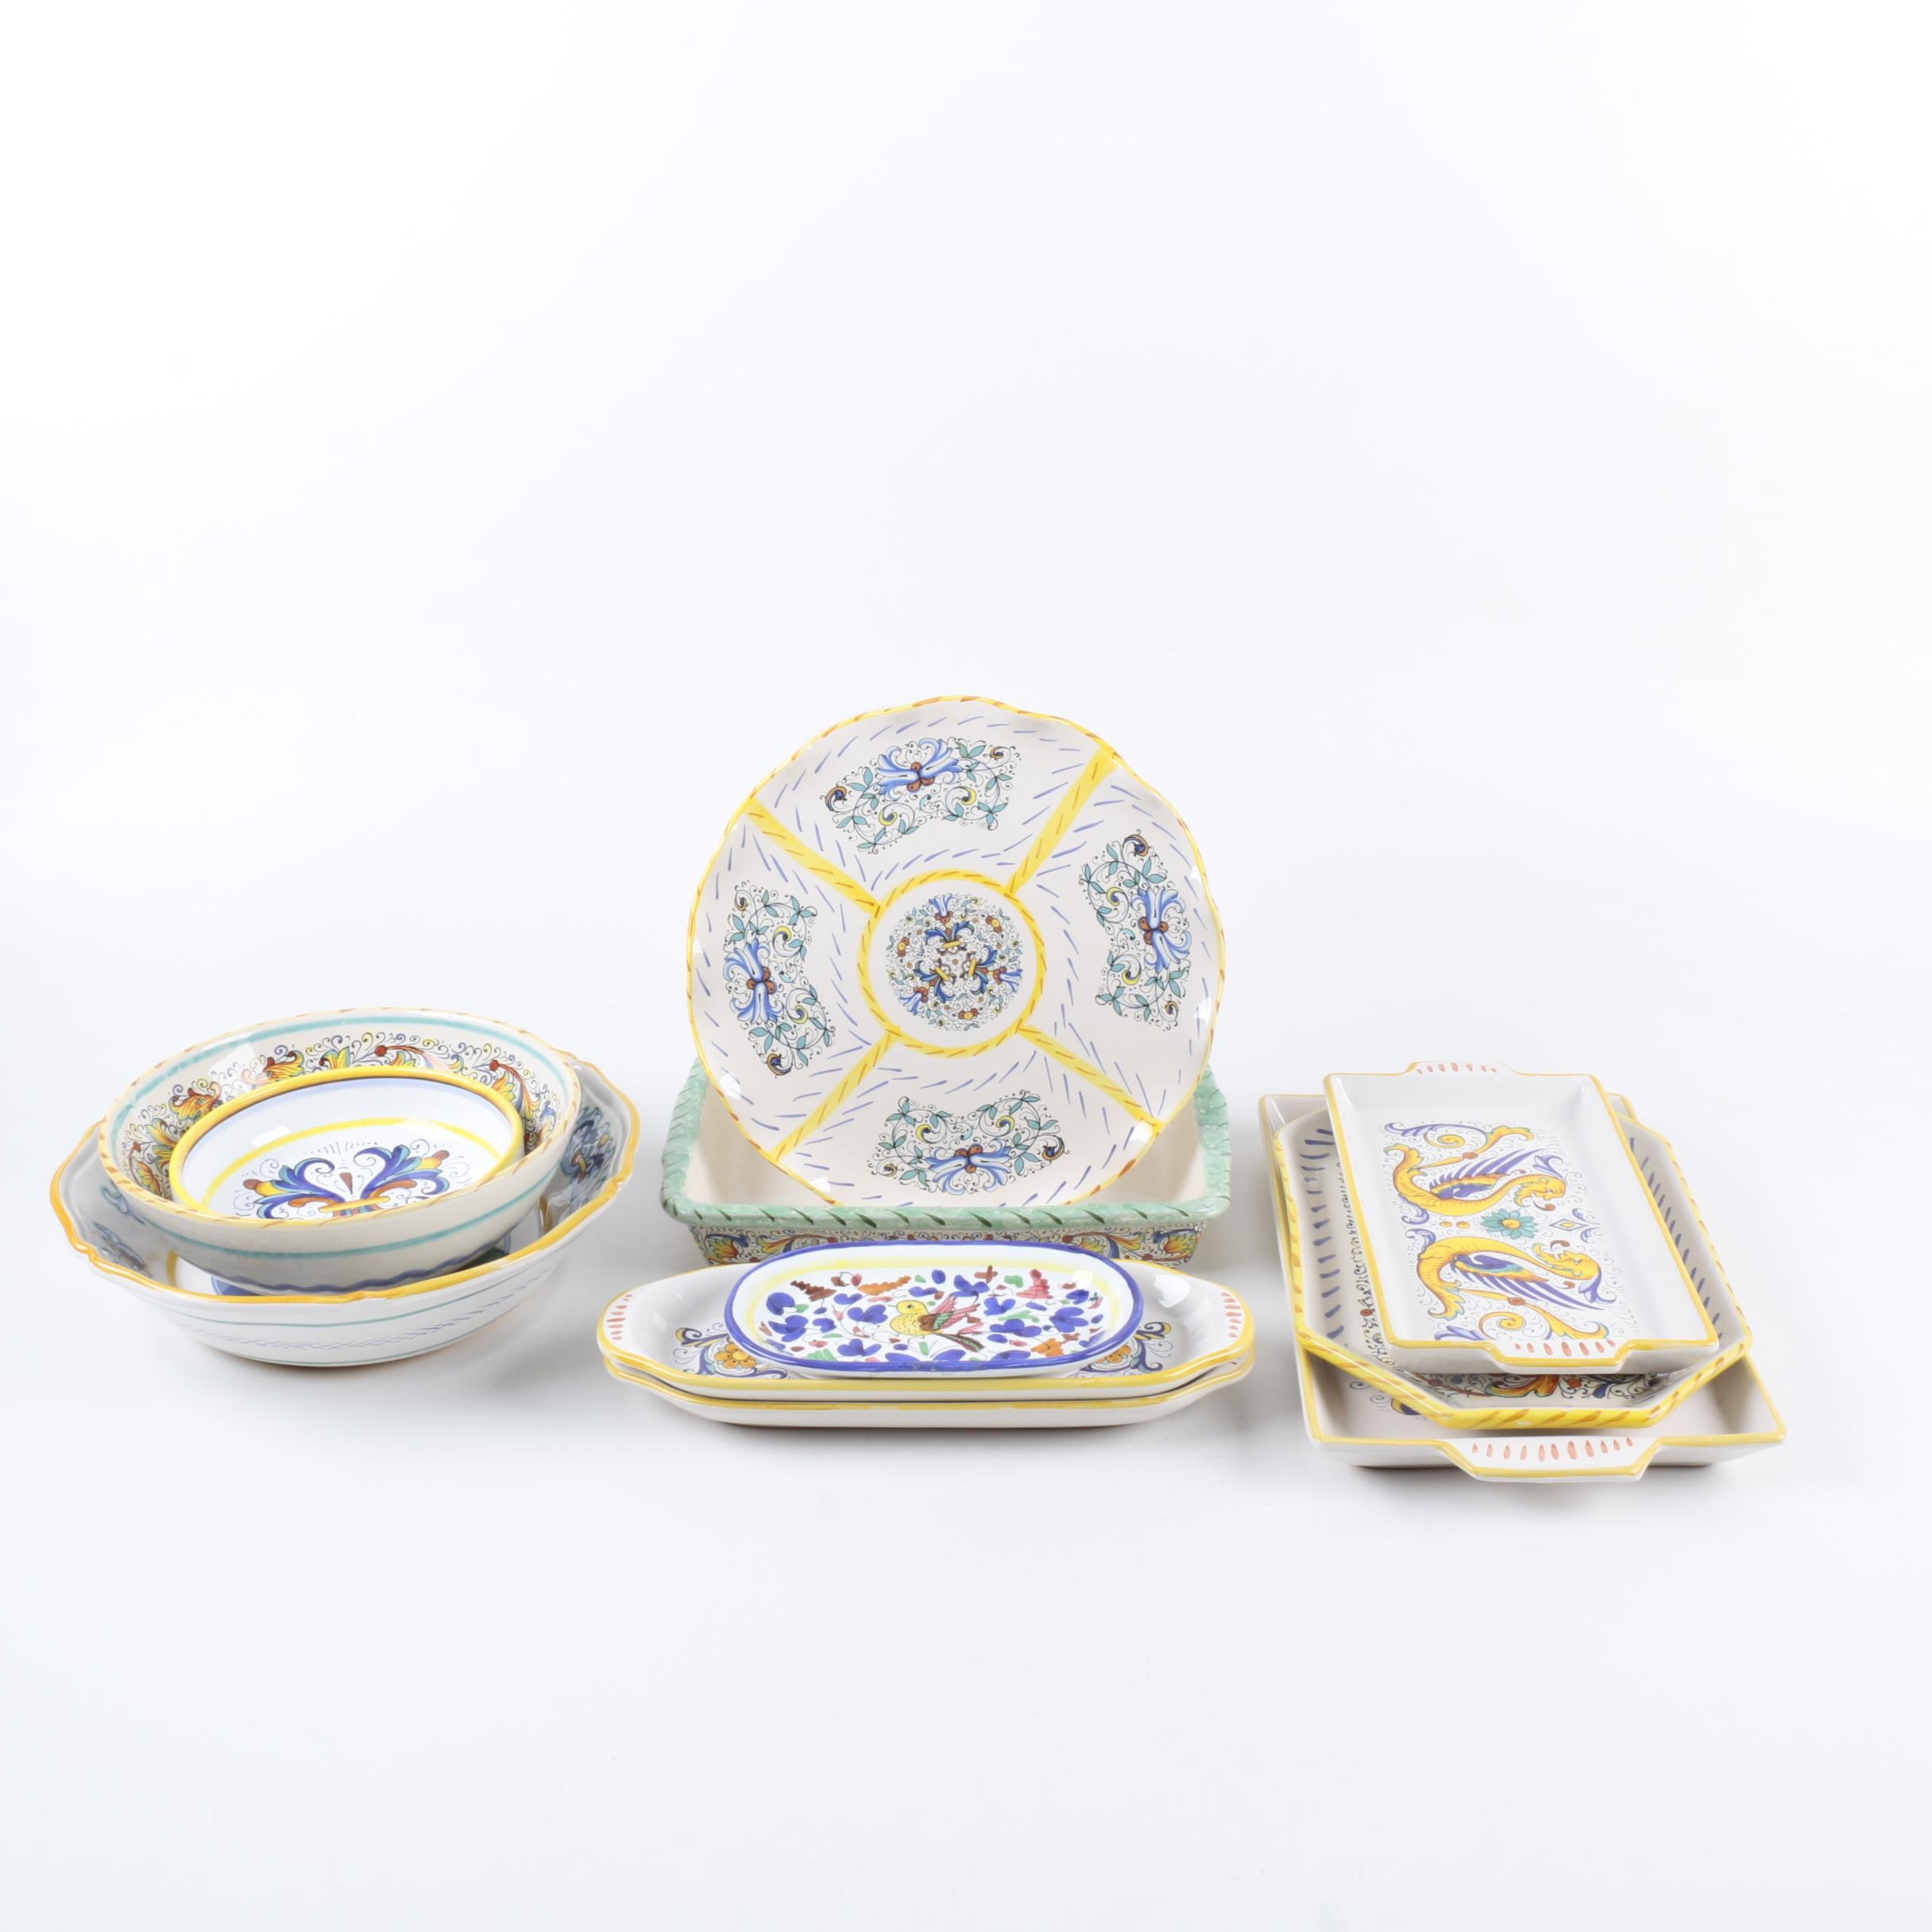 Italian Hand-Painted Serveware with Dishes